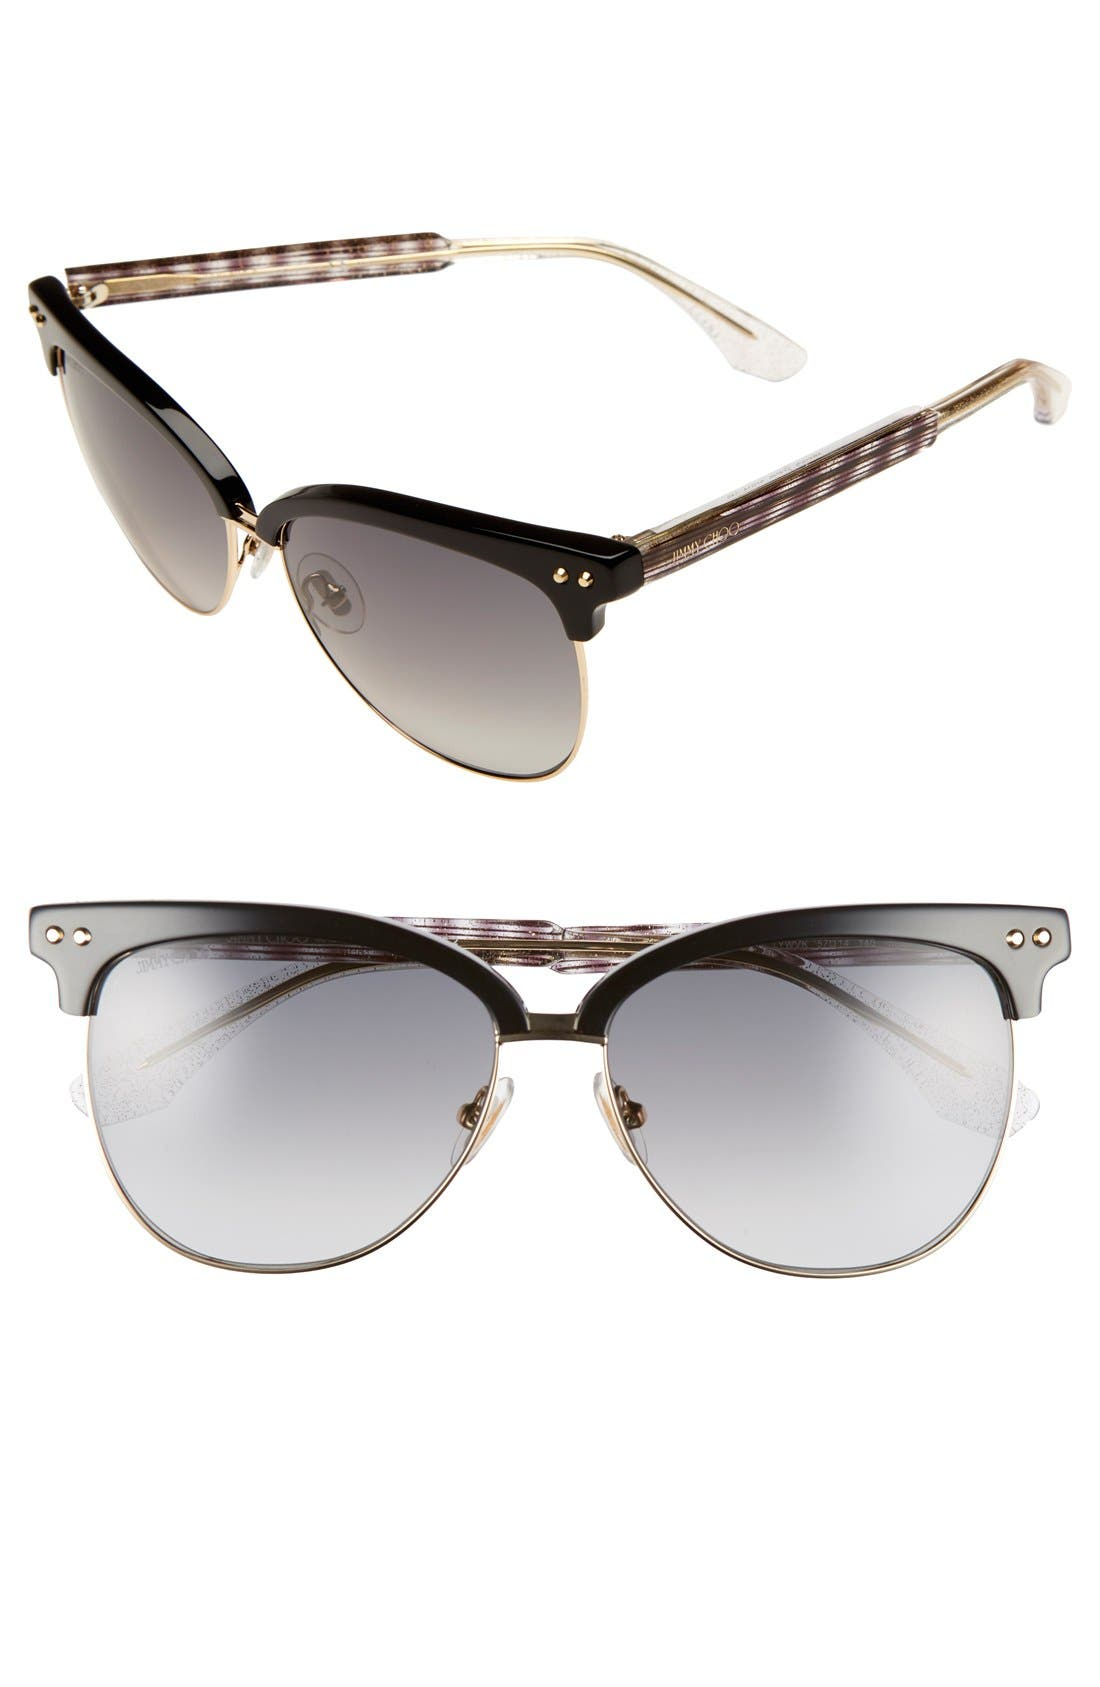 JIMMY CHOO Aryaya 57mm Retro Sunglasses